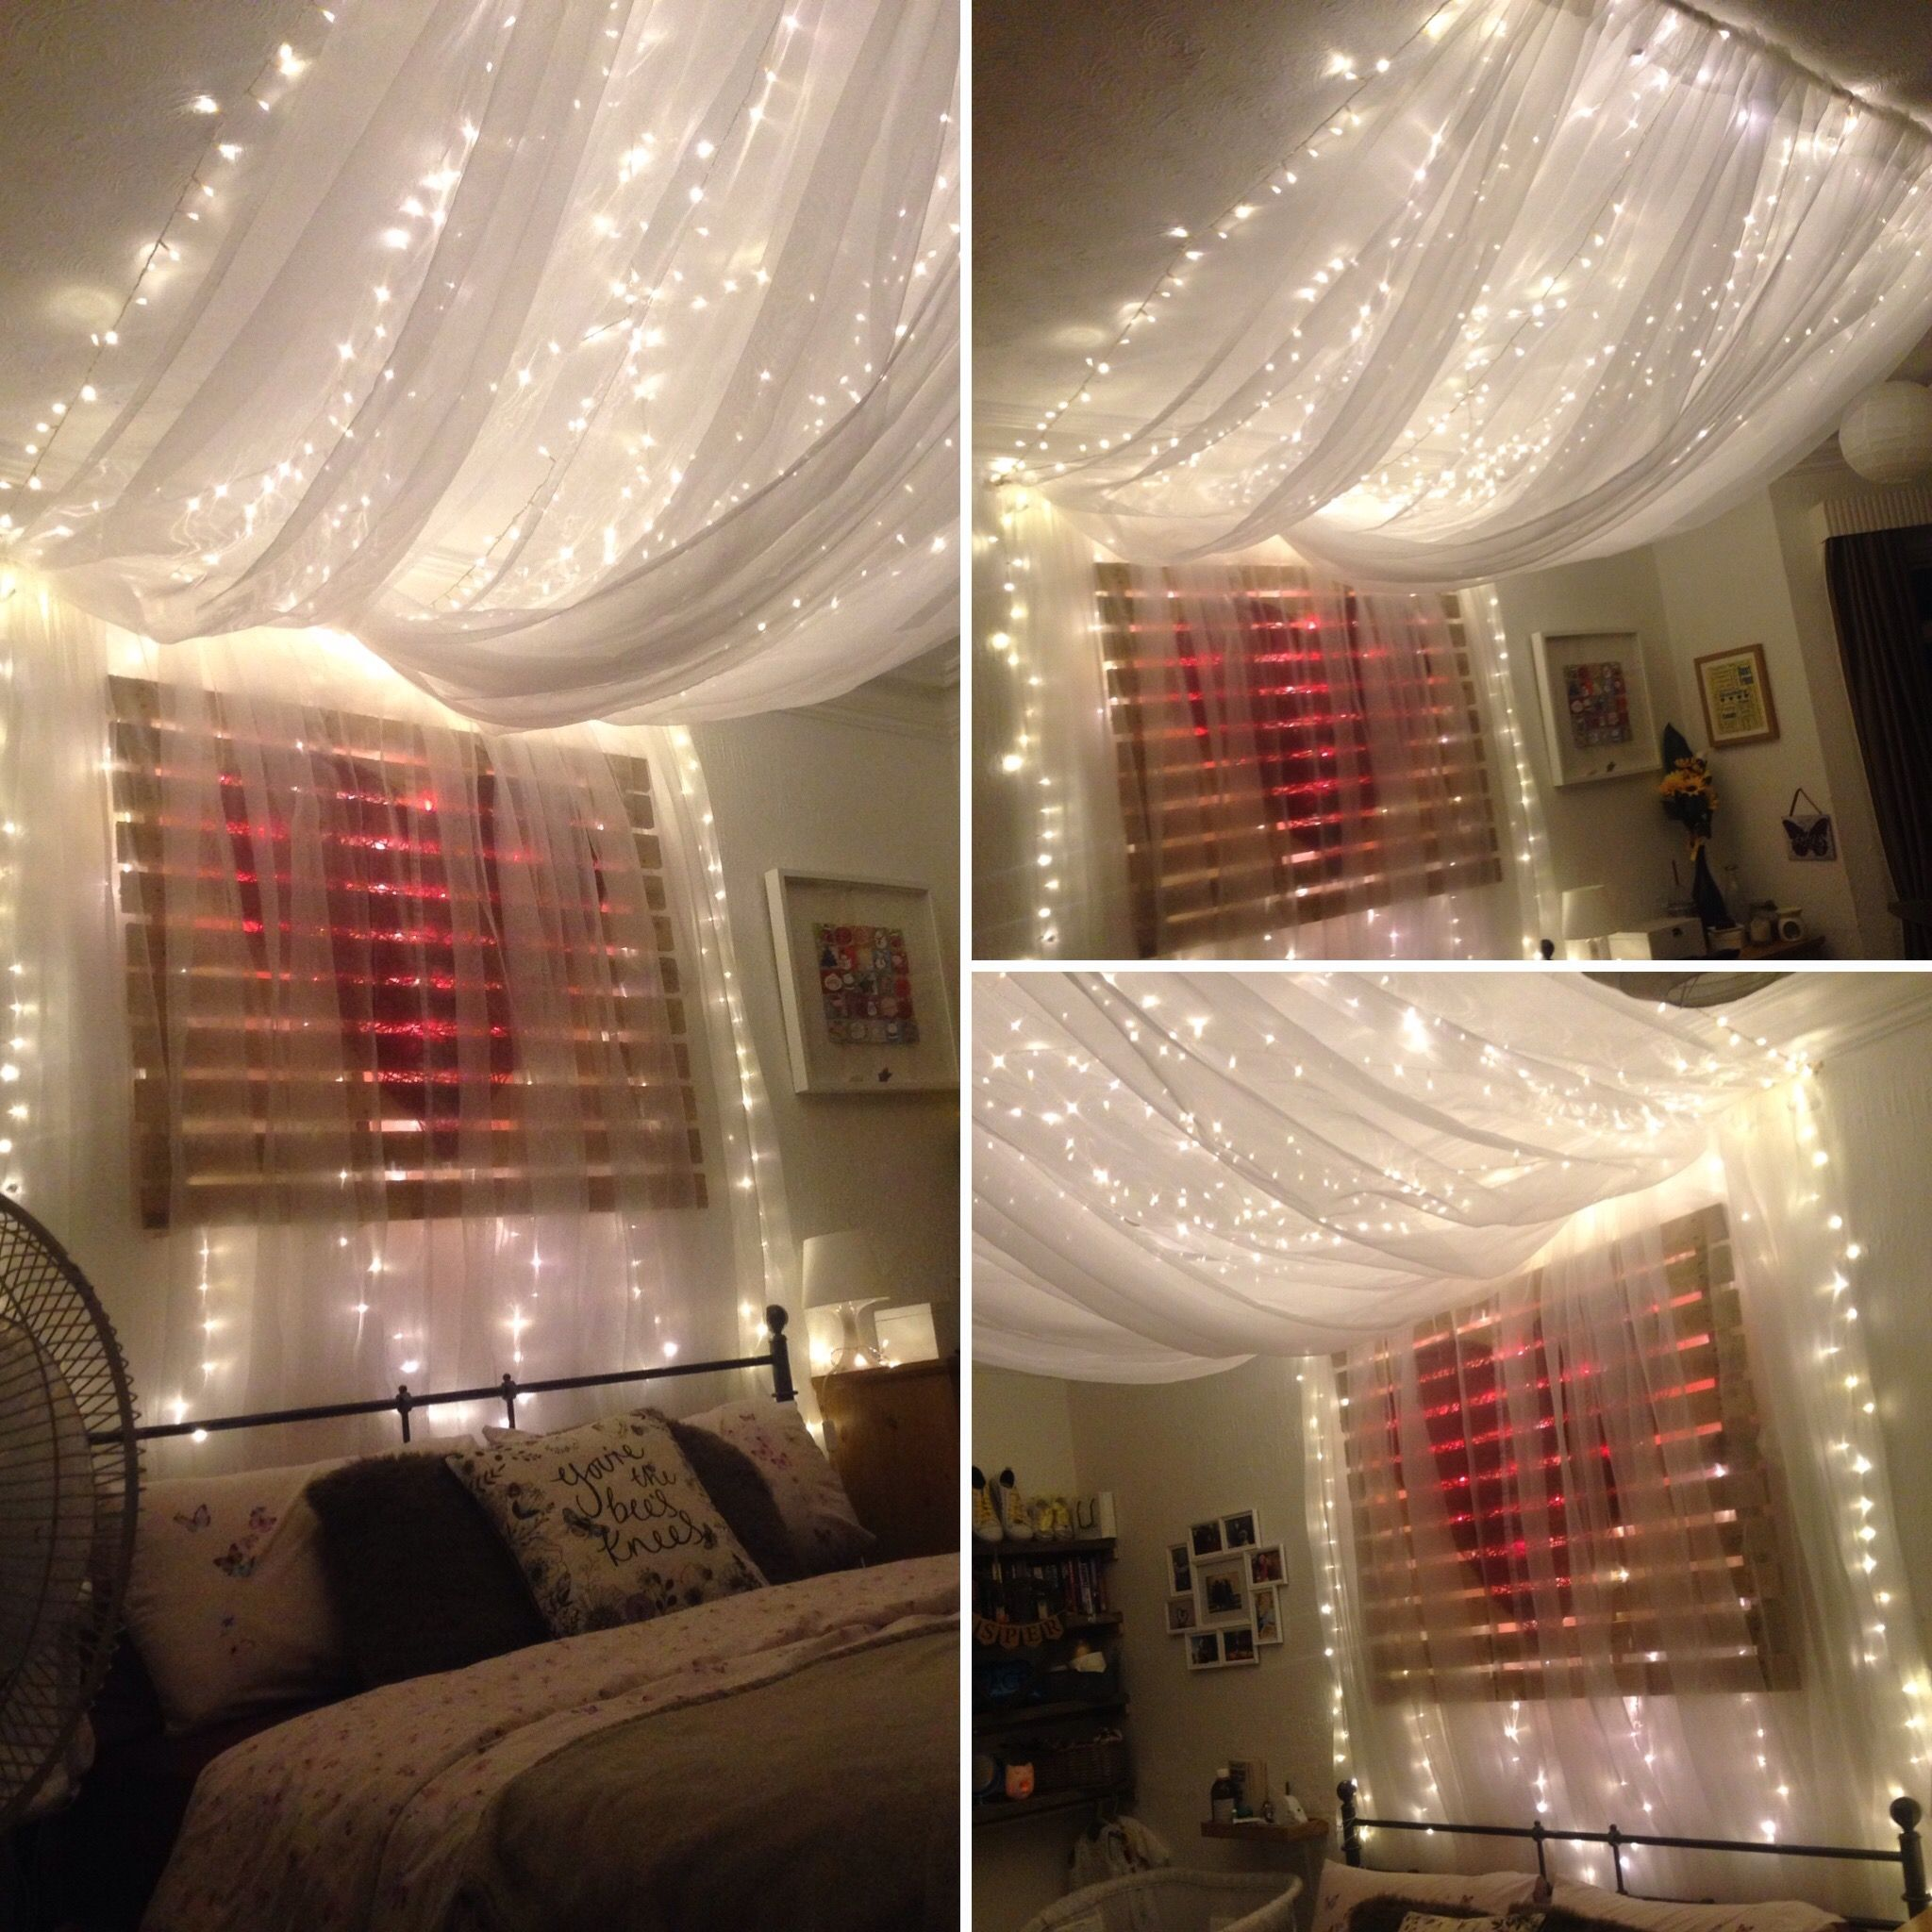 Over Bed Lights Fairy Light Bed Canopy Hung From Ceiling To Give Effect Of